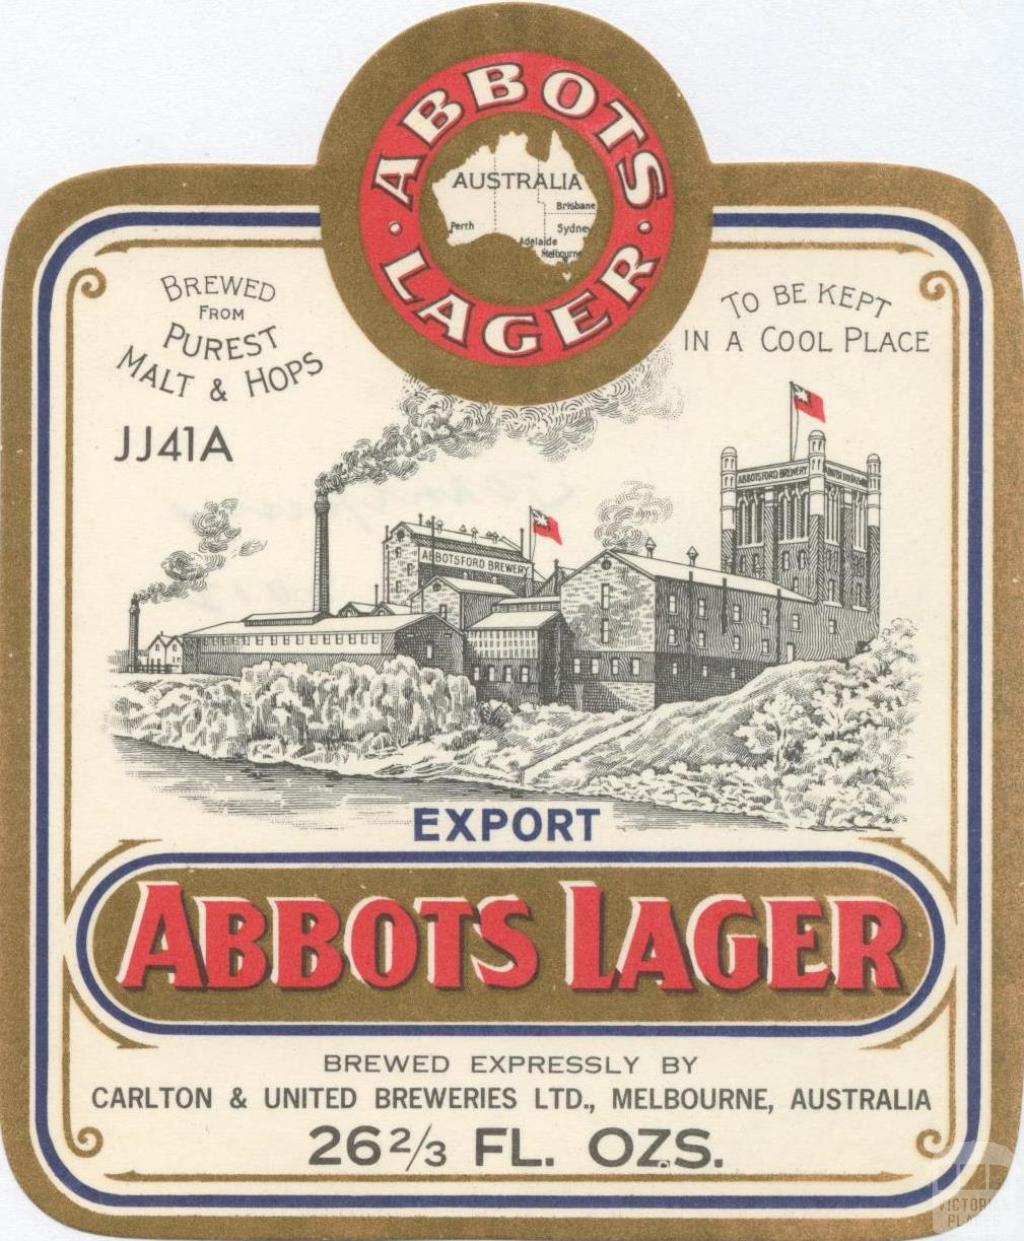 Abbots Lager, Abbotsford